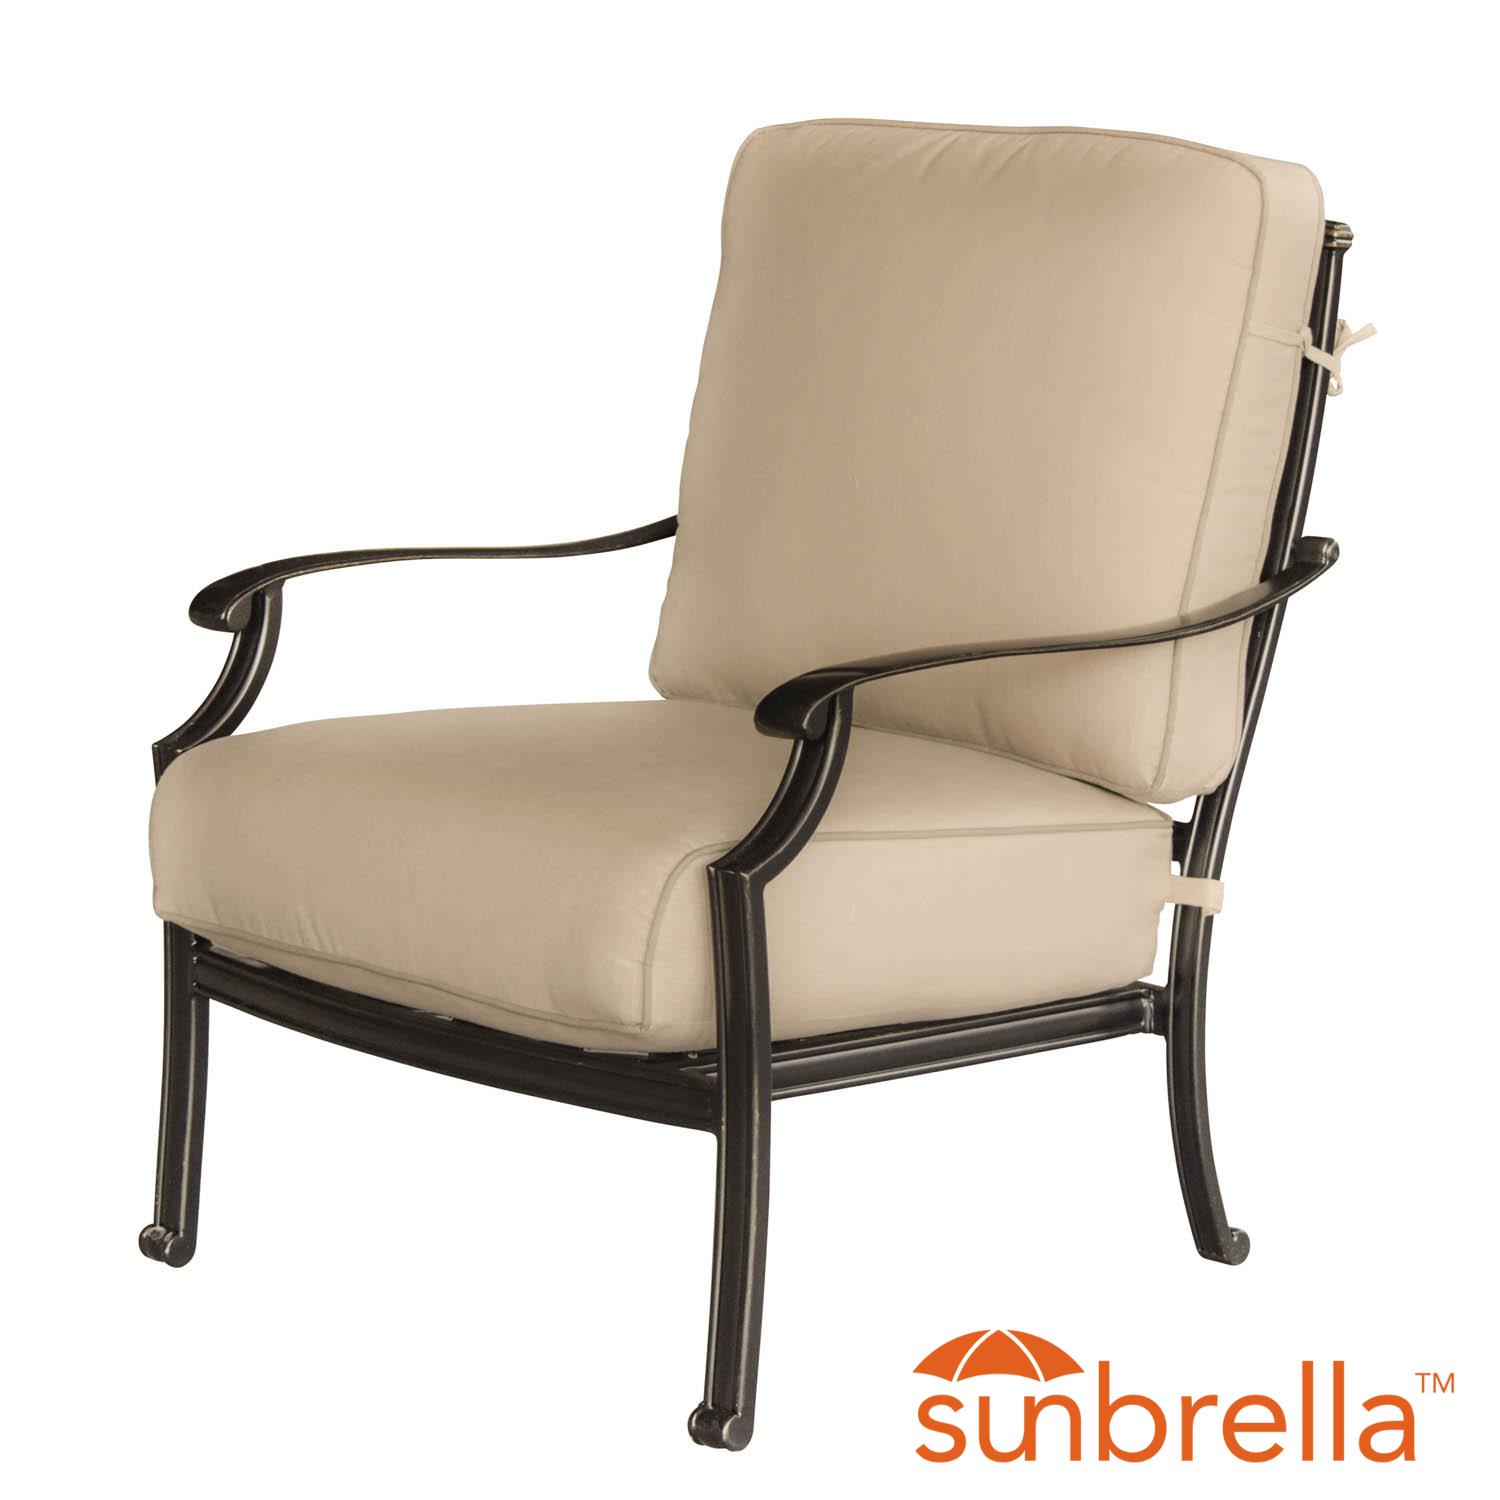 Carondelet Cast Aluminum Patio Club Chair W/ Sunbrella Sp...